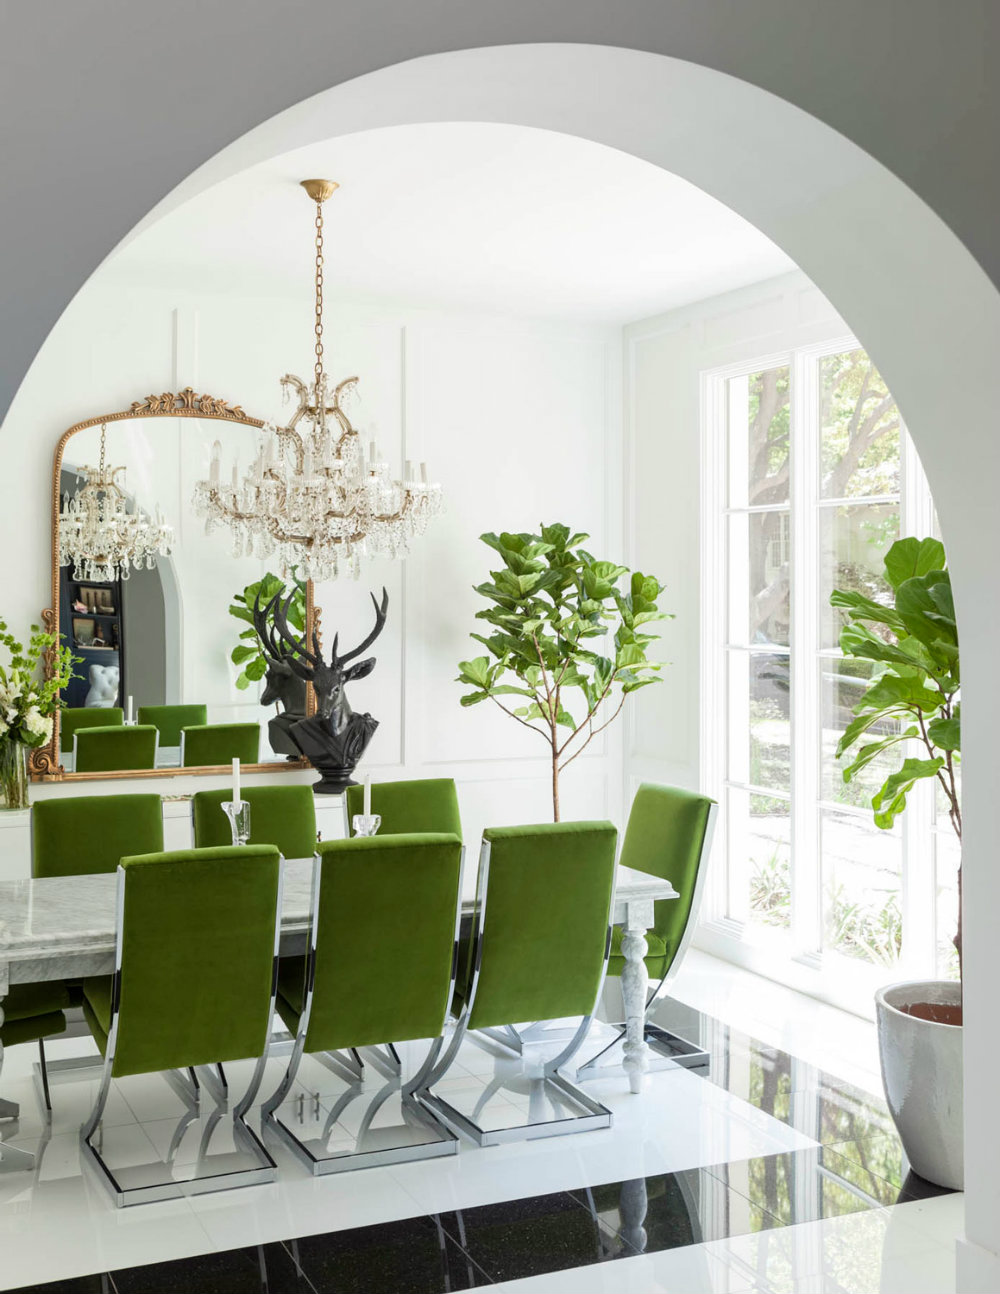 7 Summer-Ready Luxury Dining Rooms To Inspire You most iconic chandeliers Most Iconic Chandeliers In The World 7 Summer Ready Luxury Dining Rooms To Inspire You most iconic chandeliers Most Iconic Chandeliers In The World 7 Summer Ready Luxury Dining Rooms To Inspire You